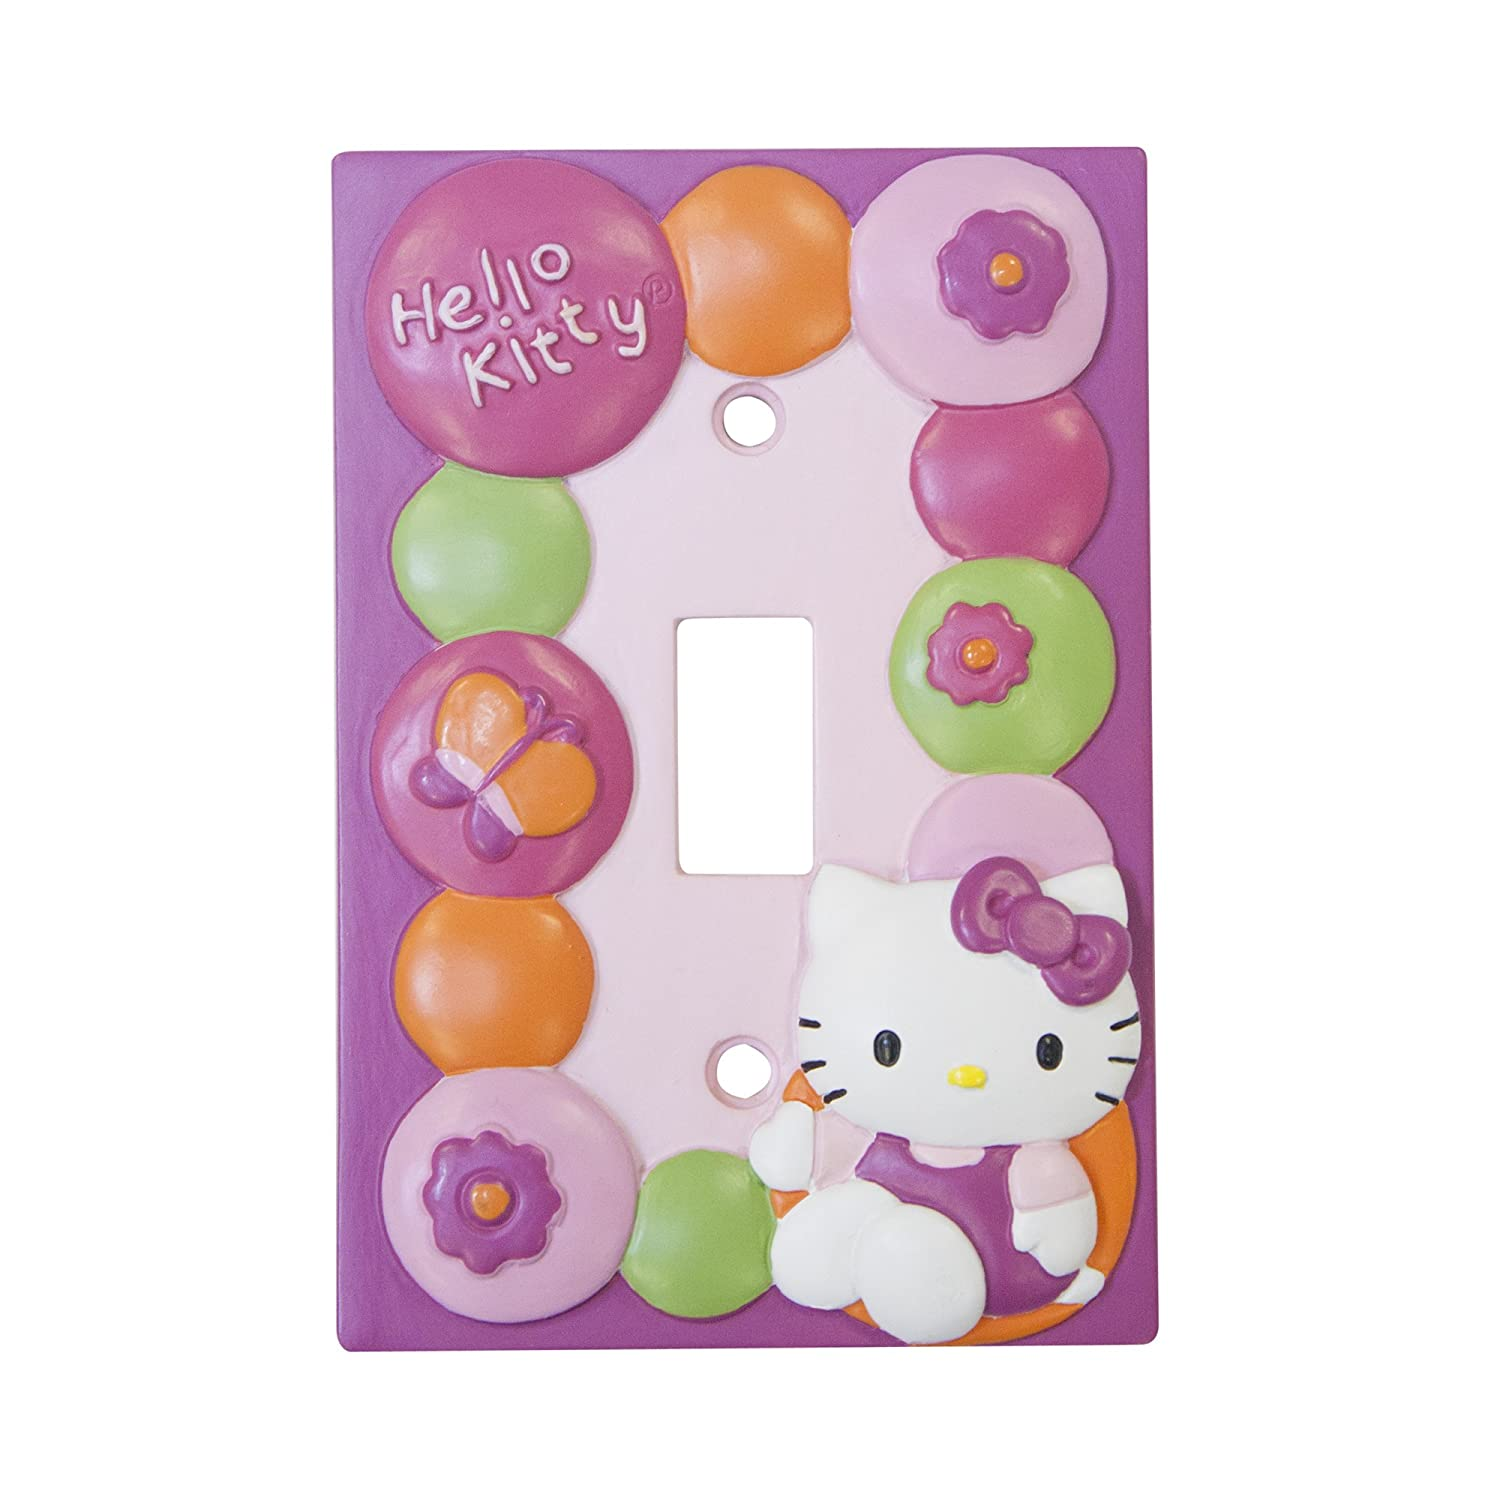 Lambs & Ivy Hello Kitty Garden Switch Plate, Pink 523025 LI-523025